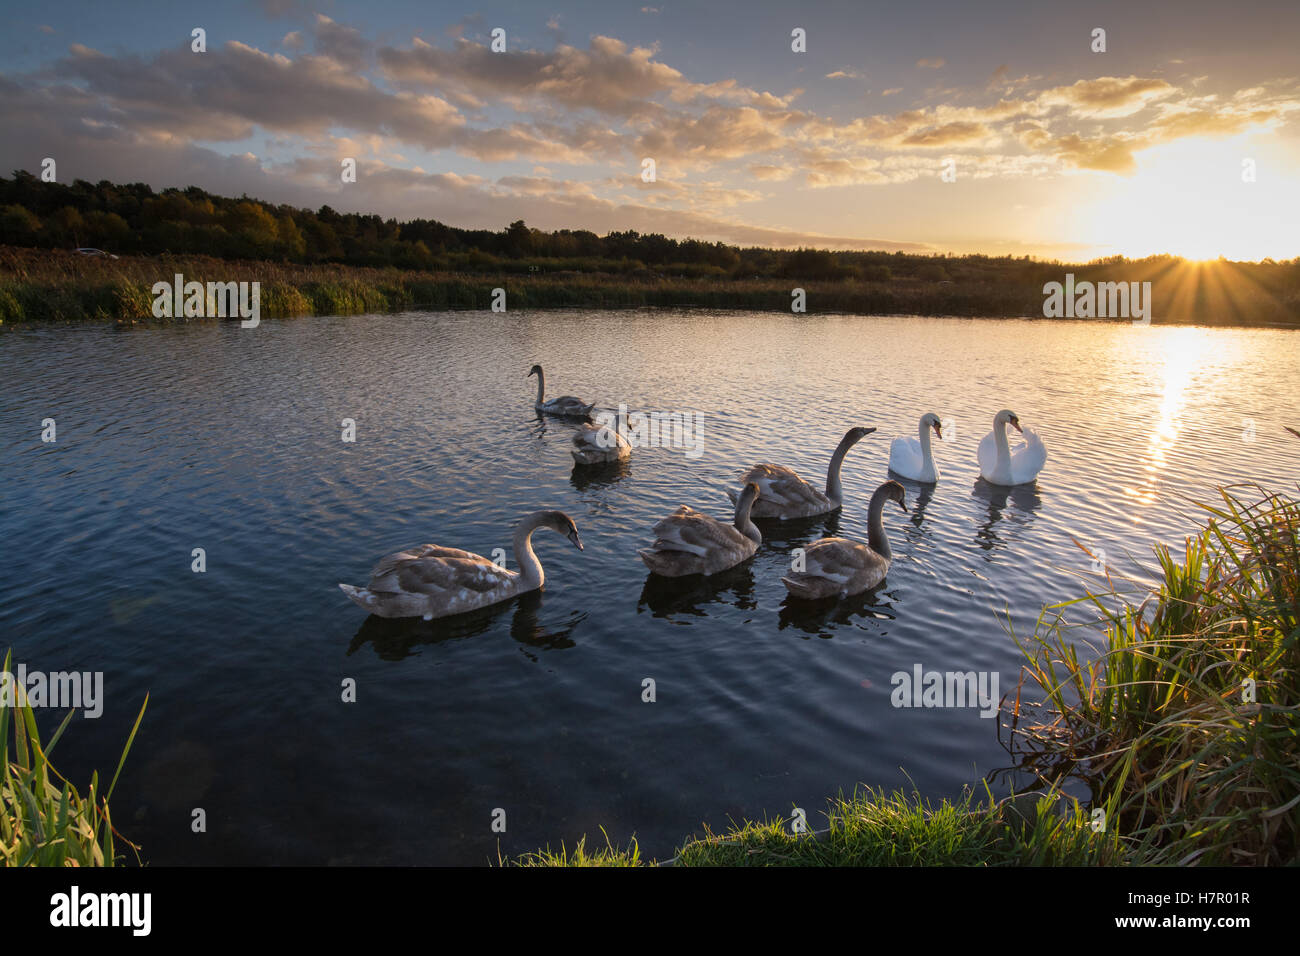 family-of-mute-swans-cygnus-olor-with-six-cygnets-on-the-basingstoke-H7R01R.jpg